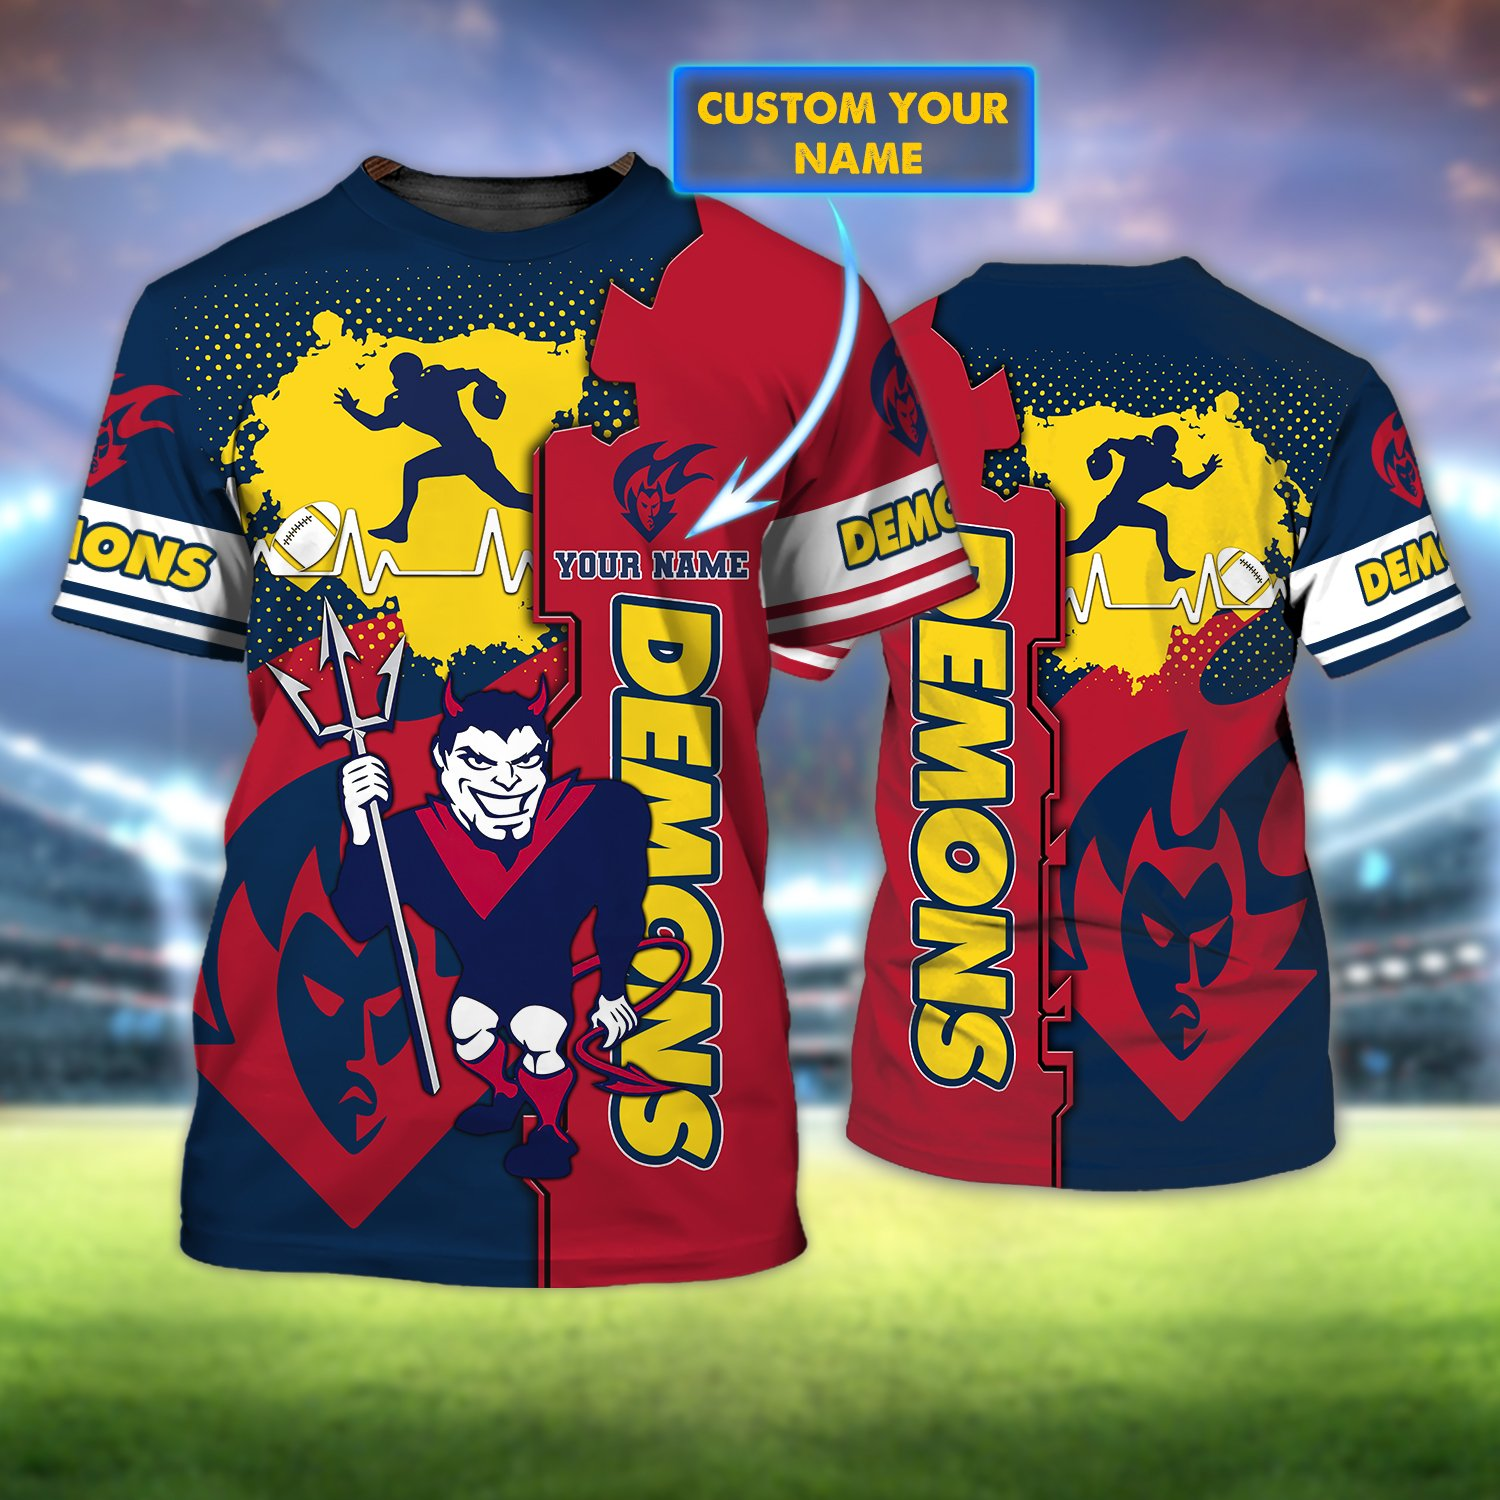 Personalized Name Melbourne Demons 3D T-shirt